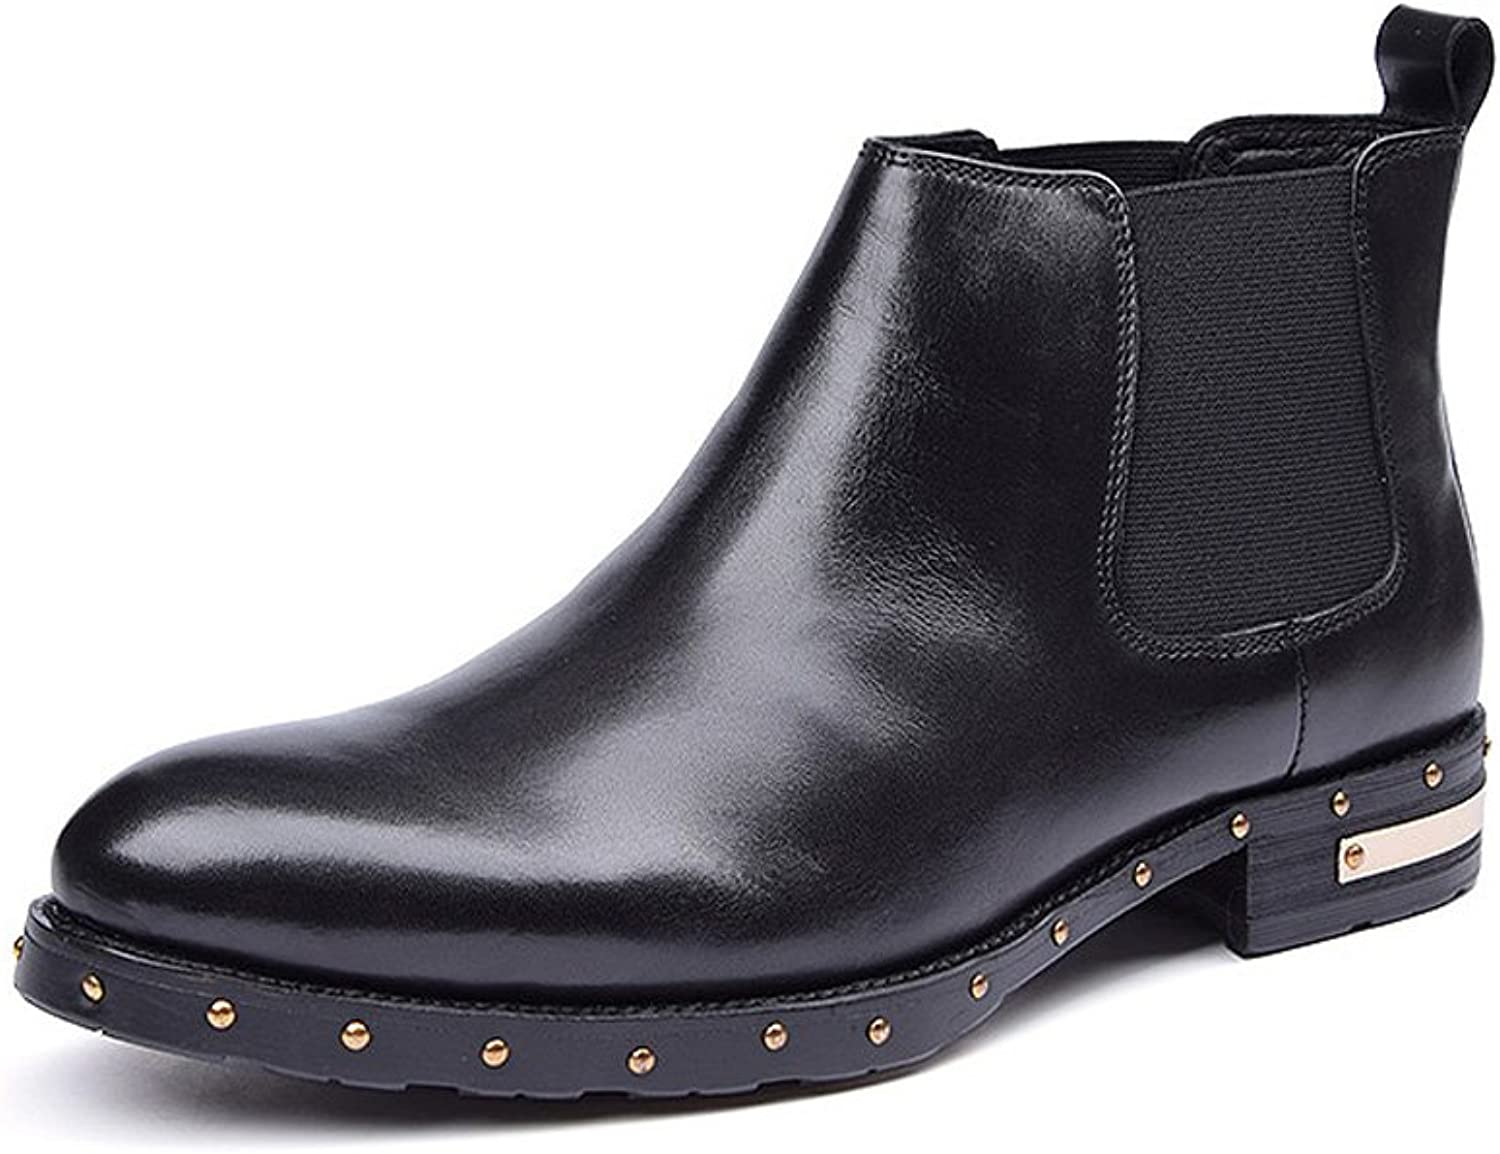 MEbox Men's New Style Leather Flat Boots Tide Martin Pointed Chelsea Boots